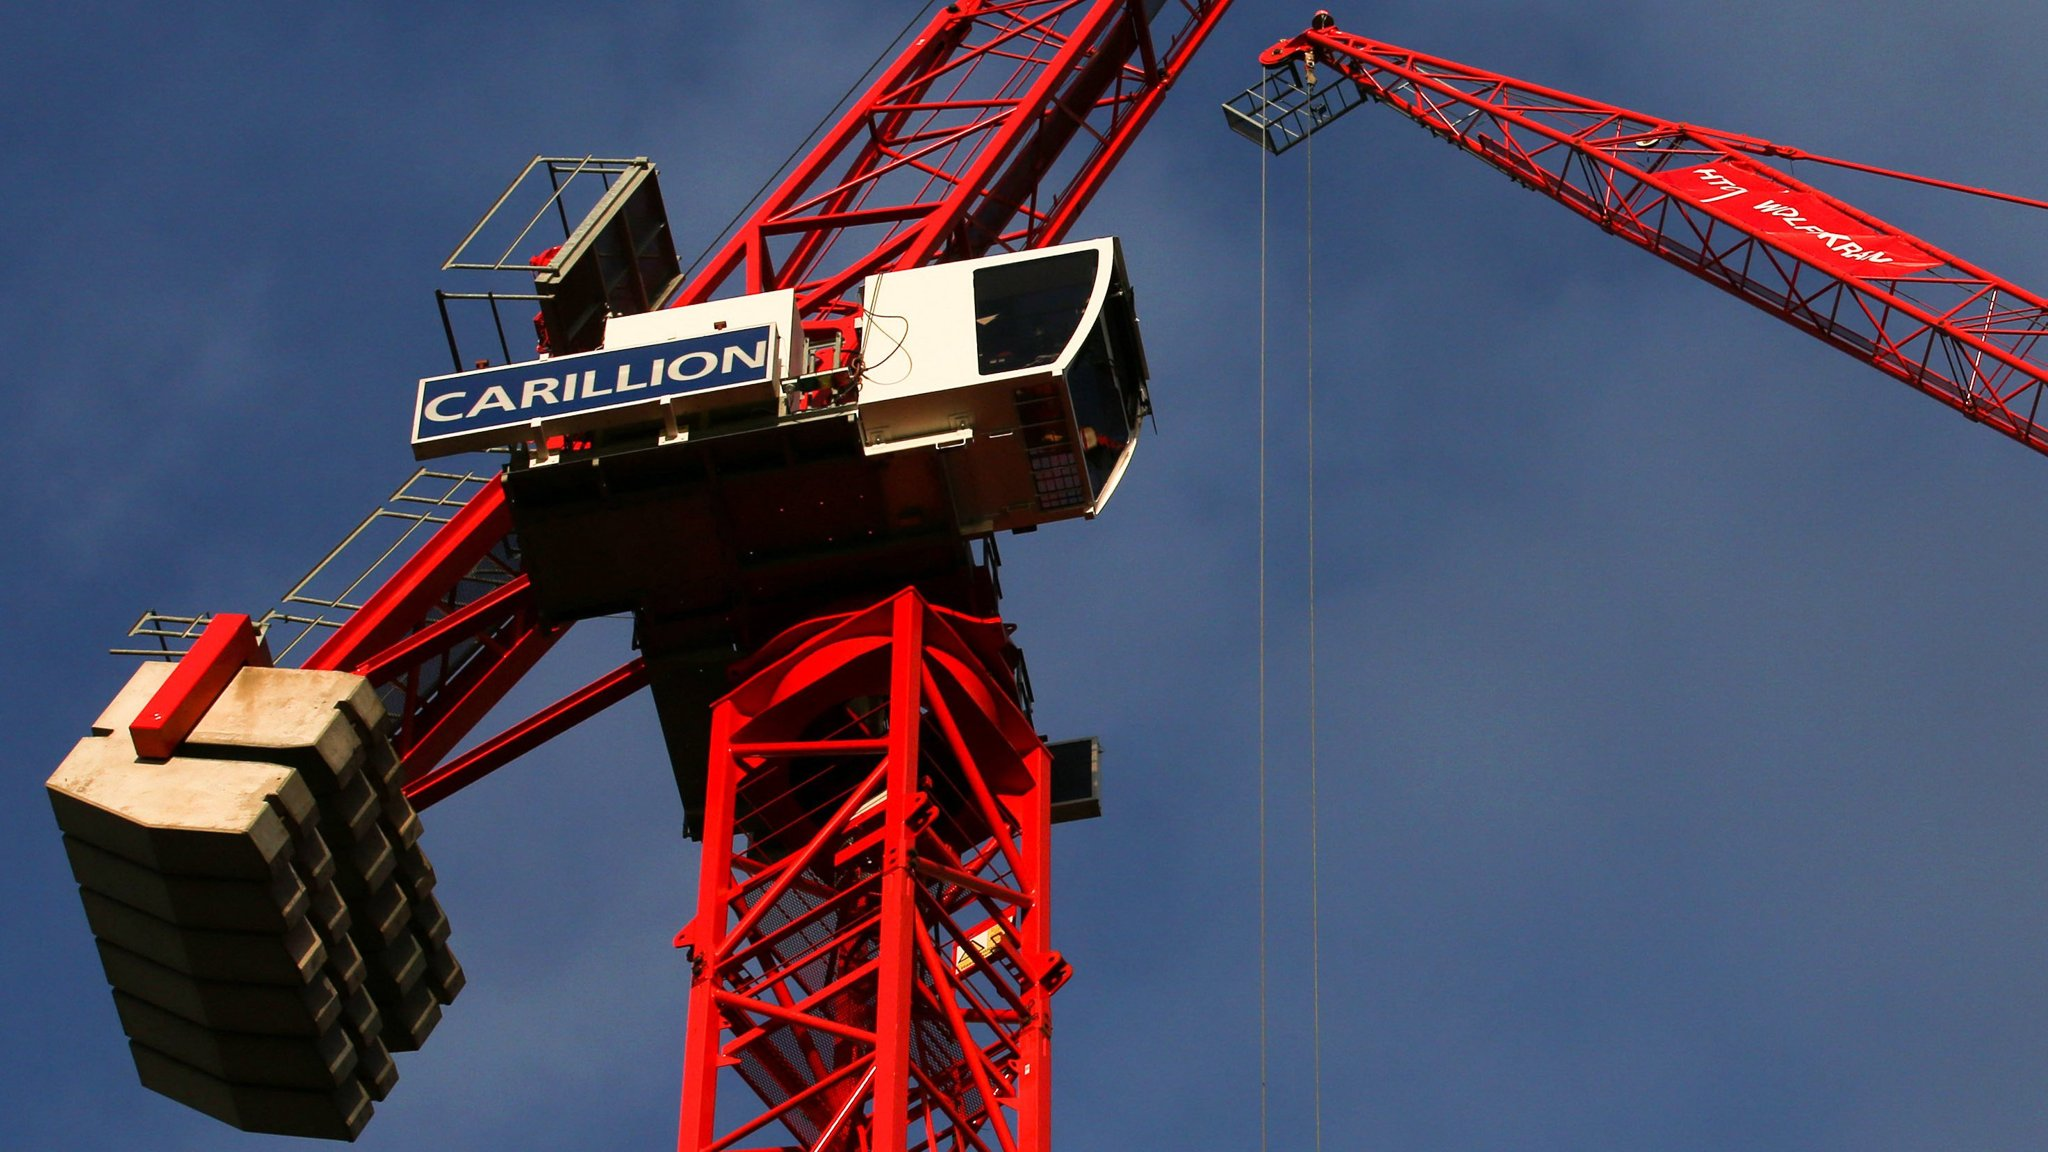 Government to hold Carillion talks on Sunday